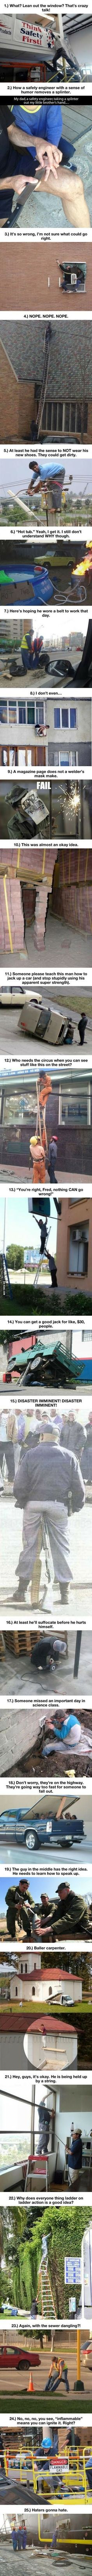 These 25 People Are About To Feel Serious Pain. But They Sorta Have It Coming…